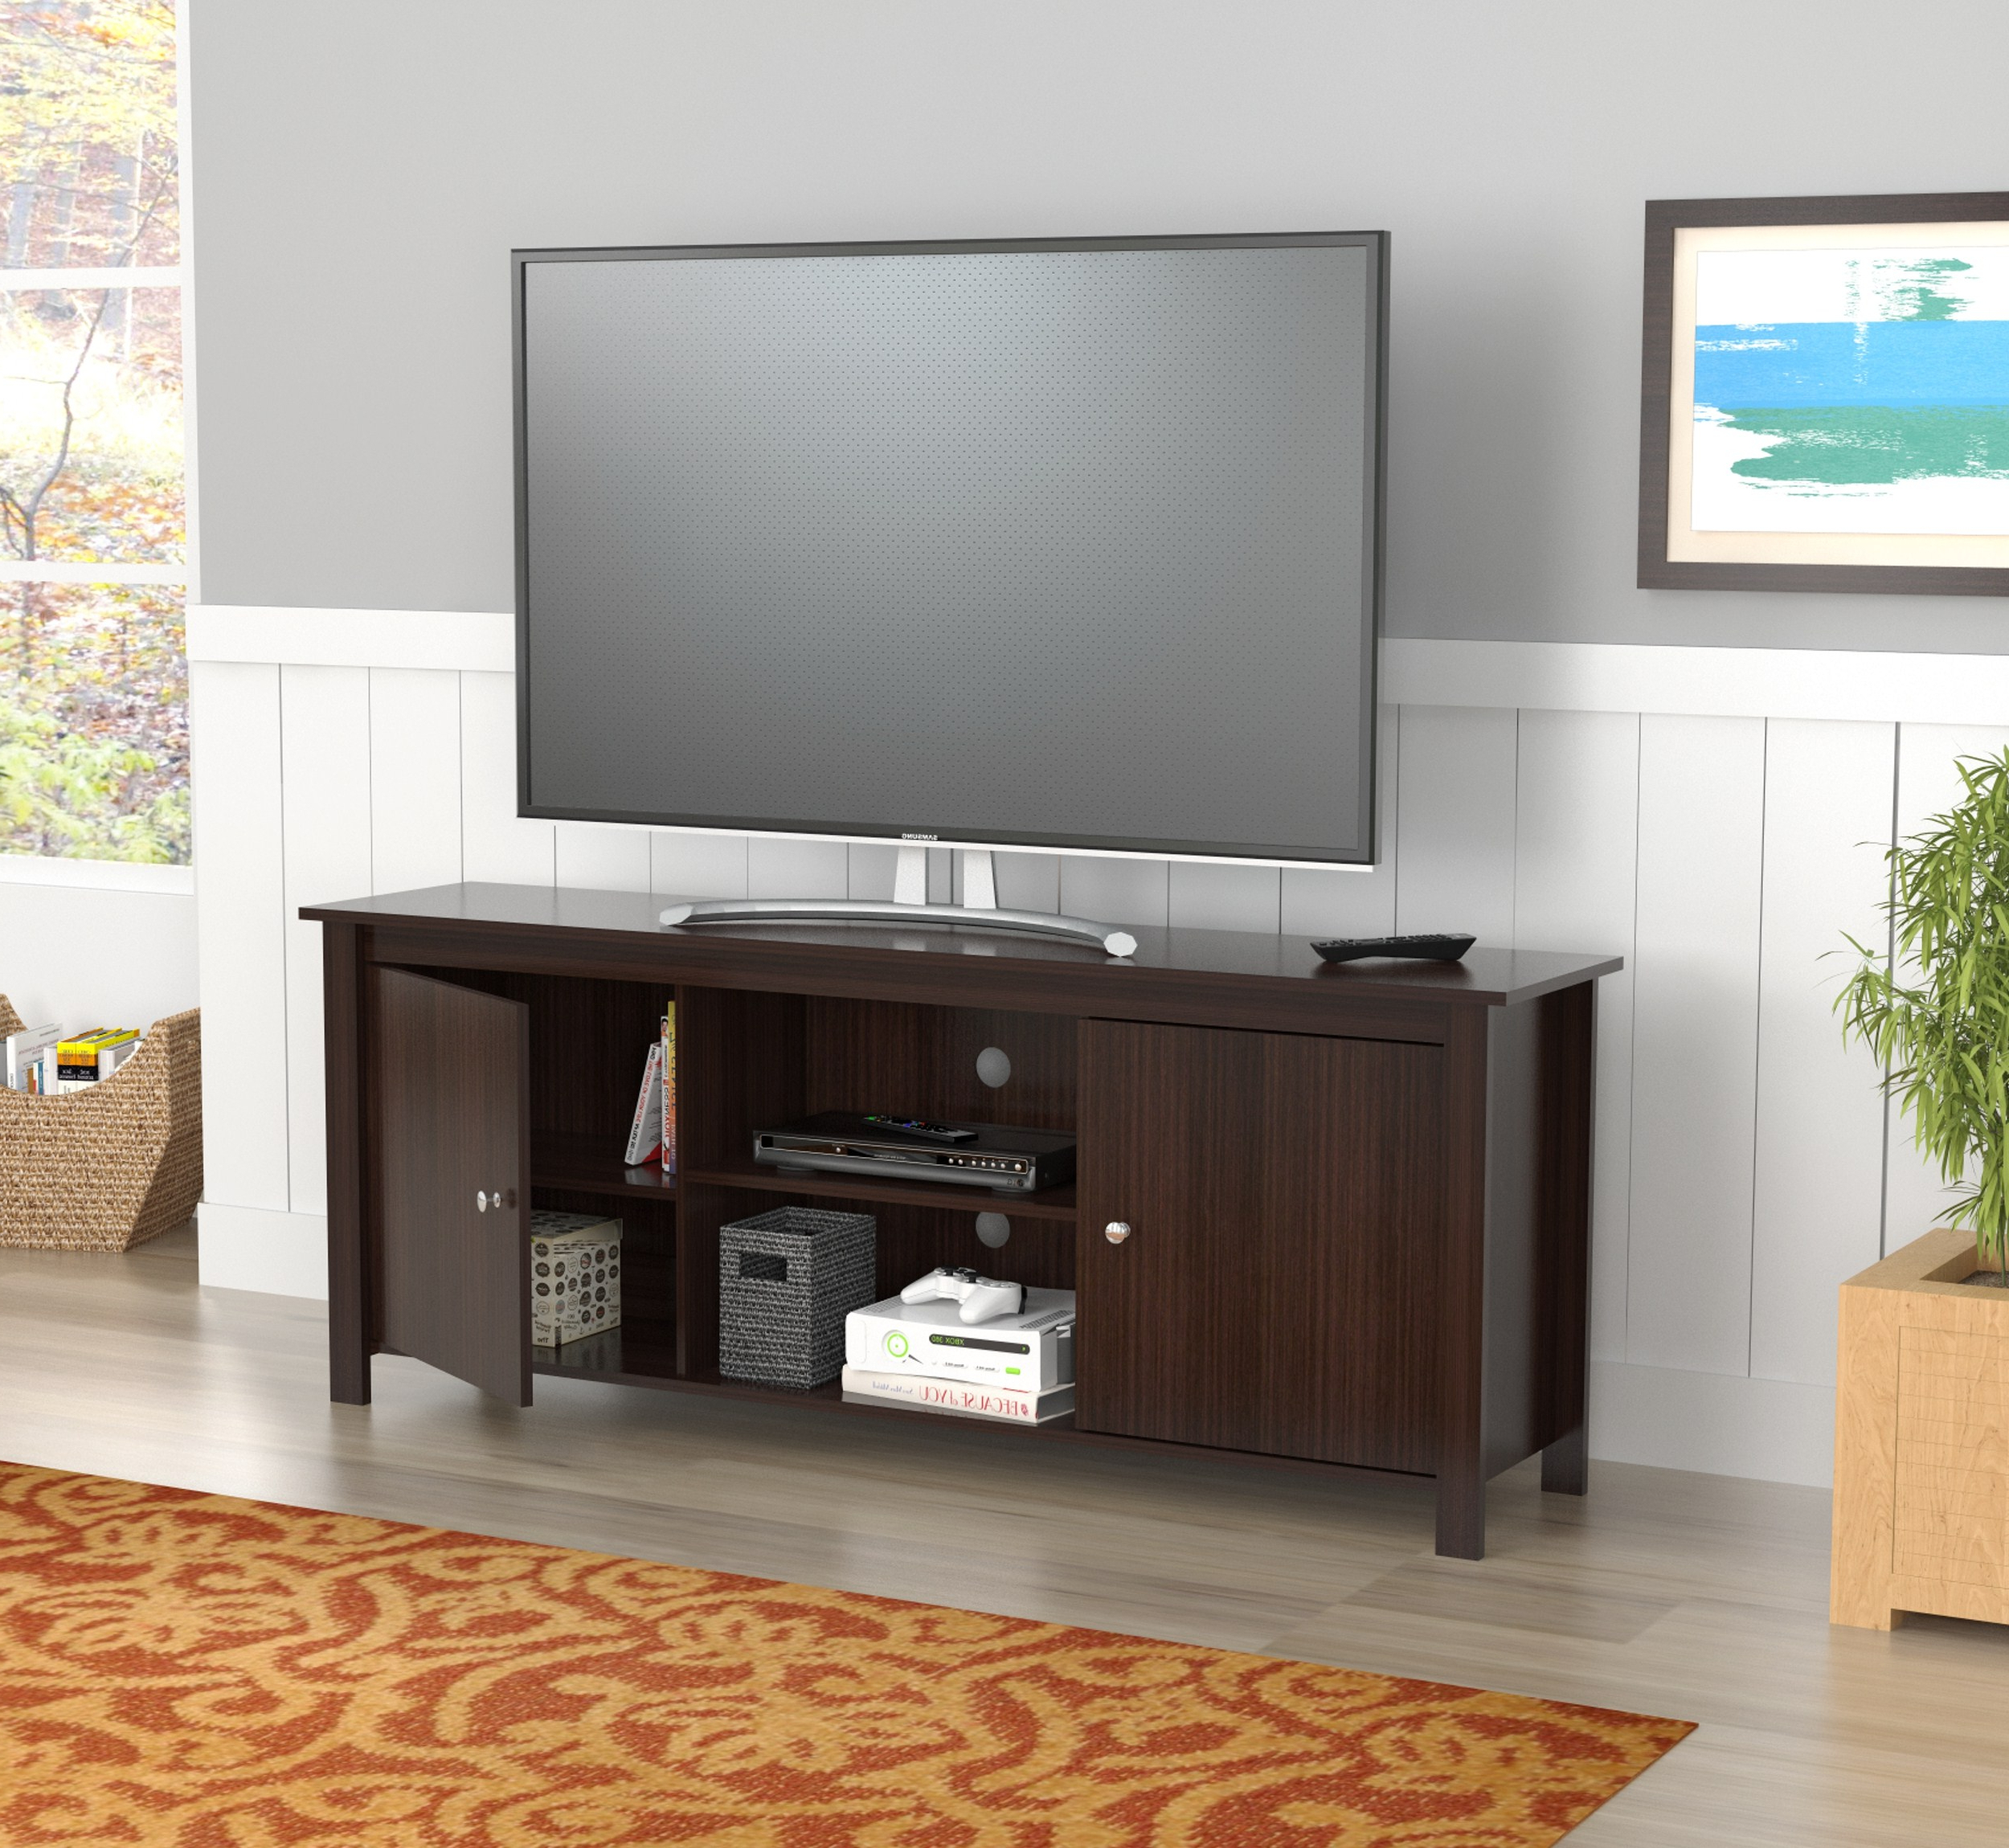 """Preferred Inval Contemporary Espresso 60 Inch Tv Stand – Walmart Inside Evelynn Tv Stands For Tvs Up To 60"""" (View 15 of 25)"""